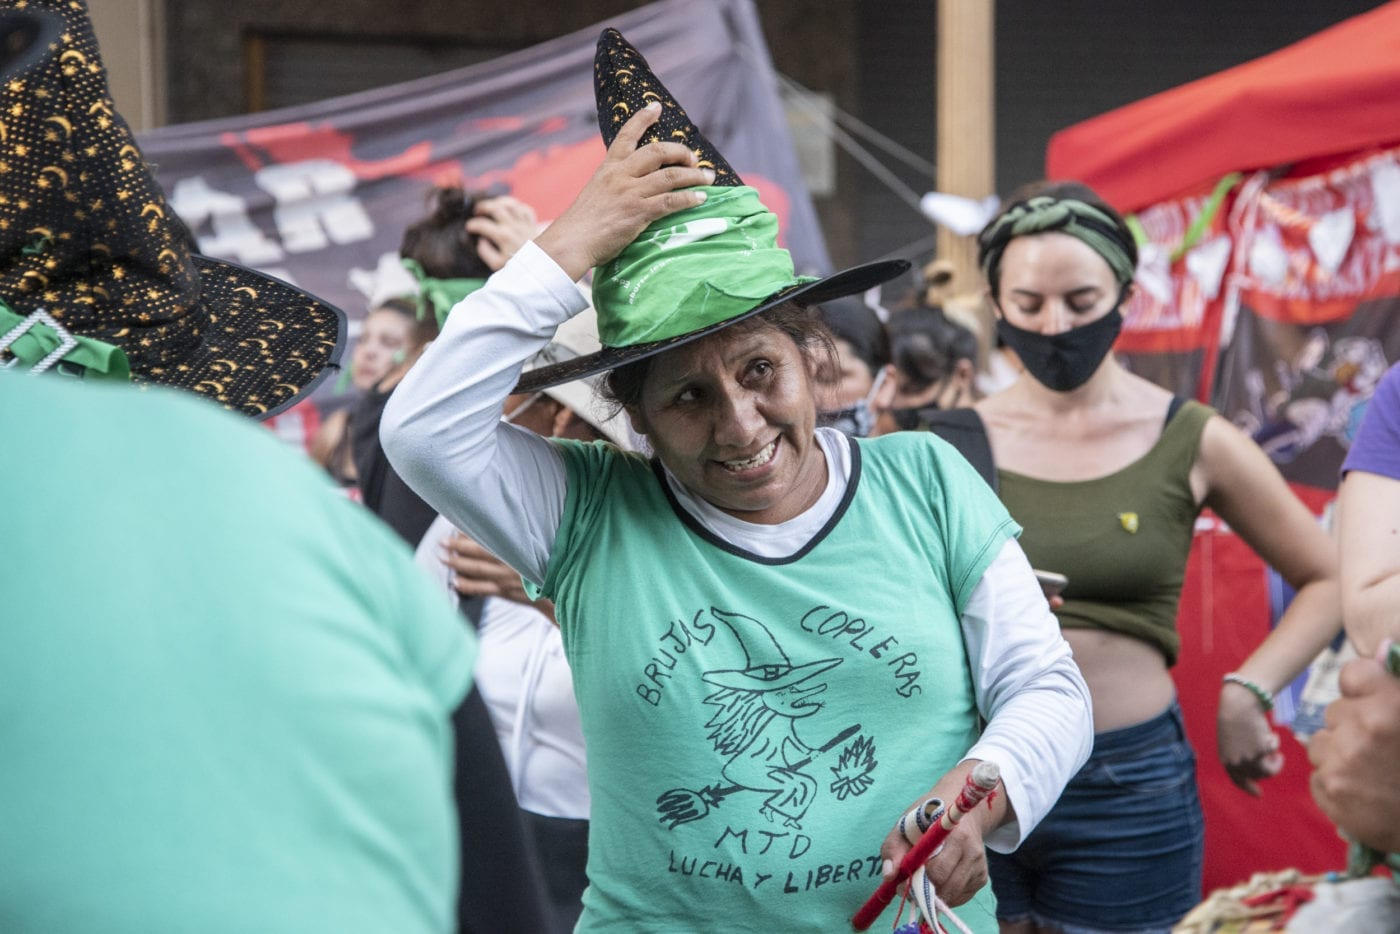 People celebrate the Argentine senate's legalization of abortions on Dec. 30, 2020.